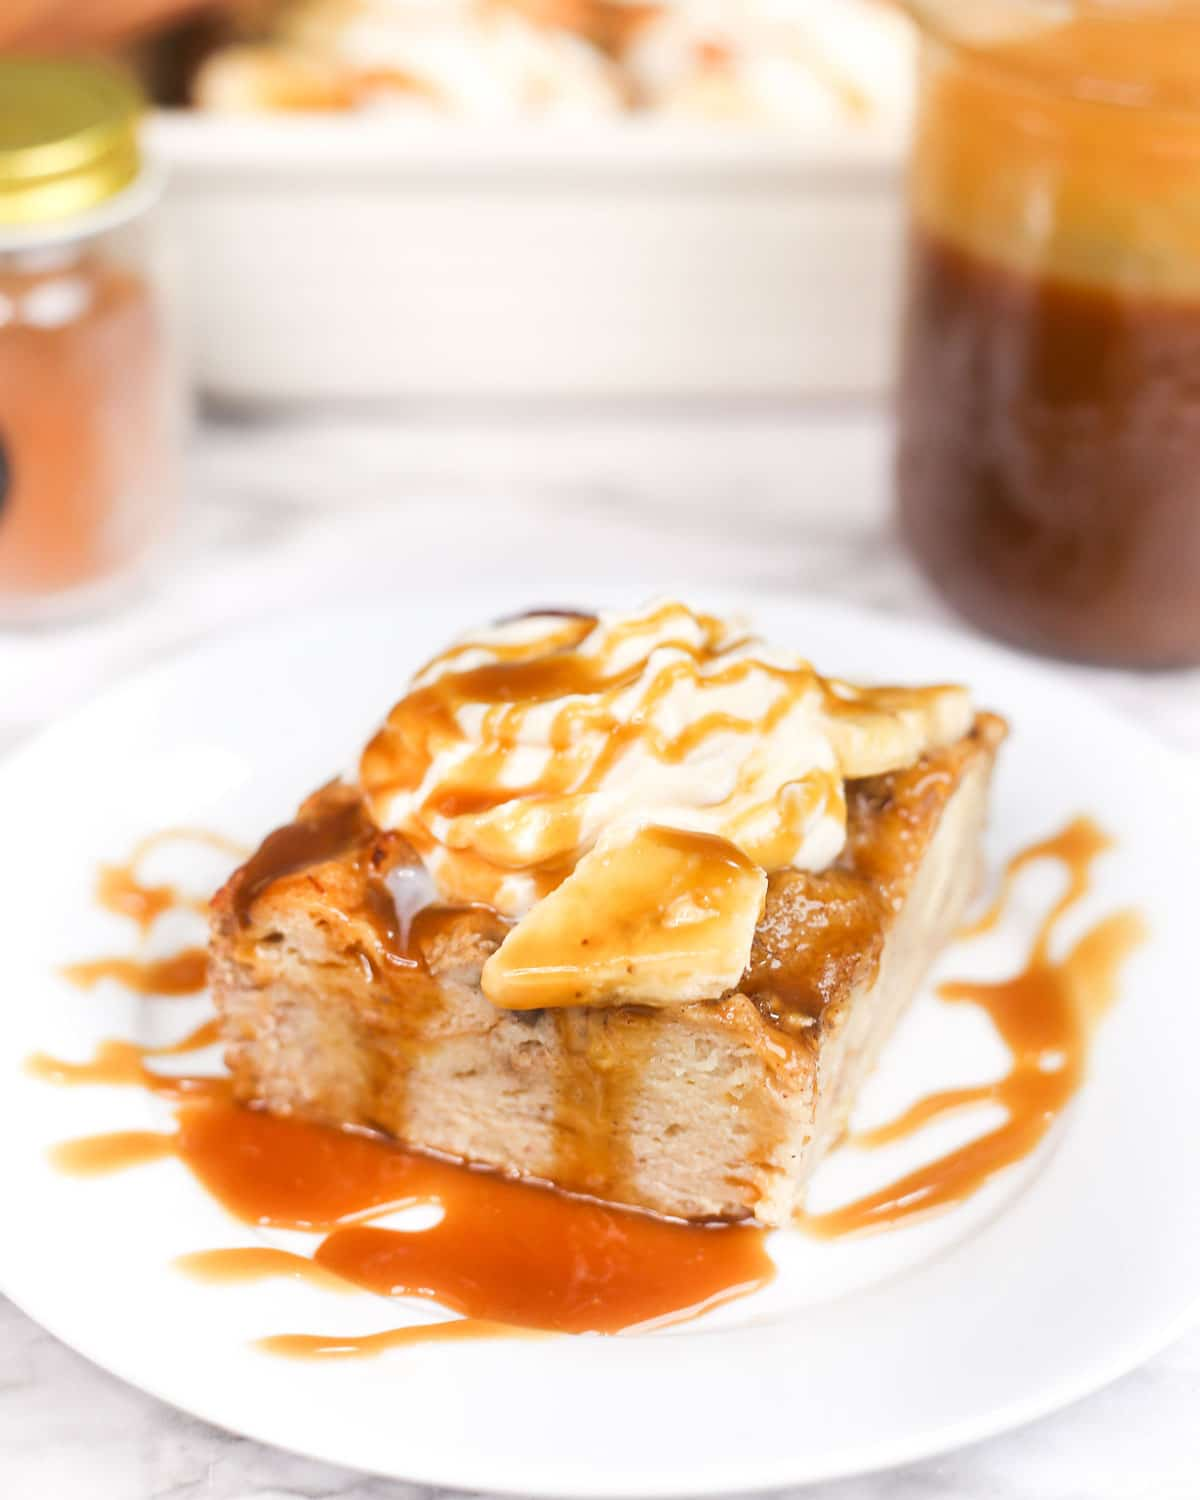 a plate of bread pudding served with banana slices, whipped cream, and caramel sauce.